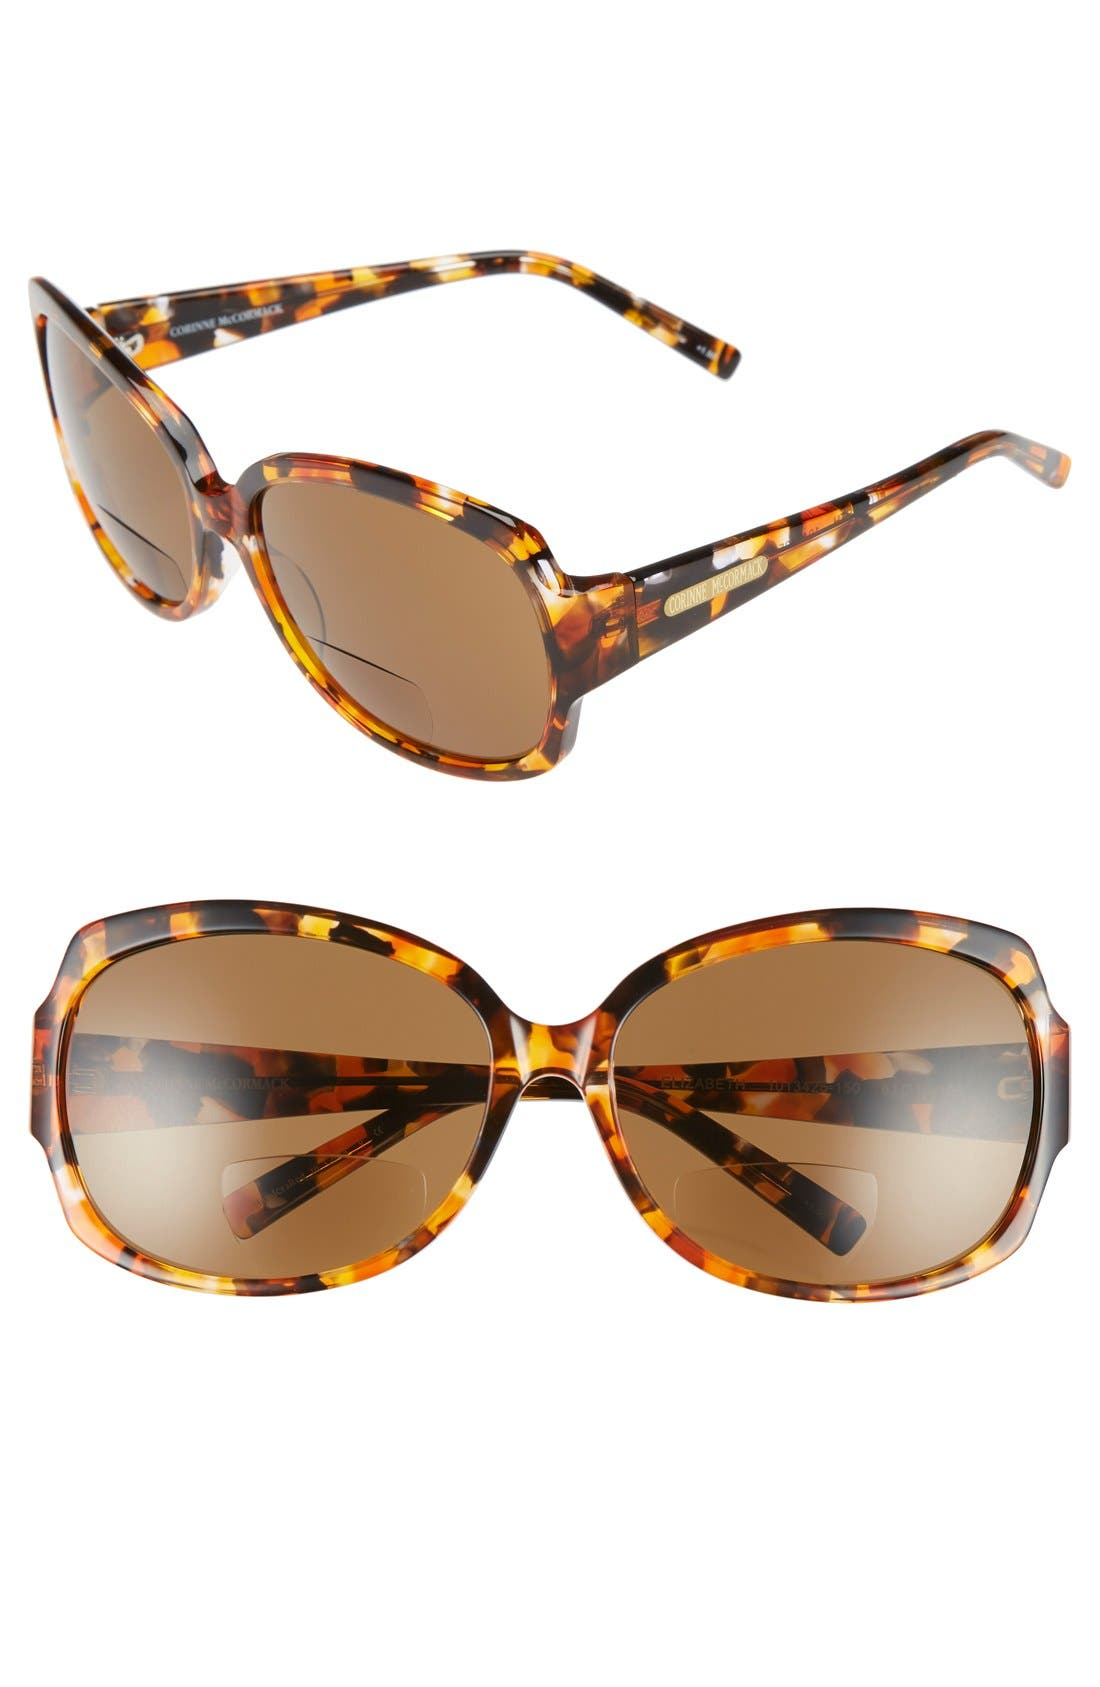 Corinne McCormack 'Elizabeth' 61mm Reading Sunglasses